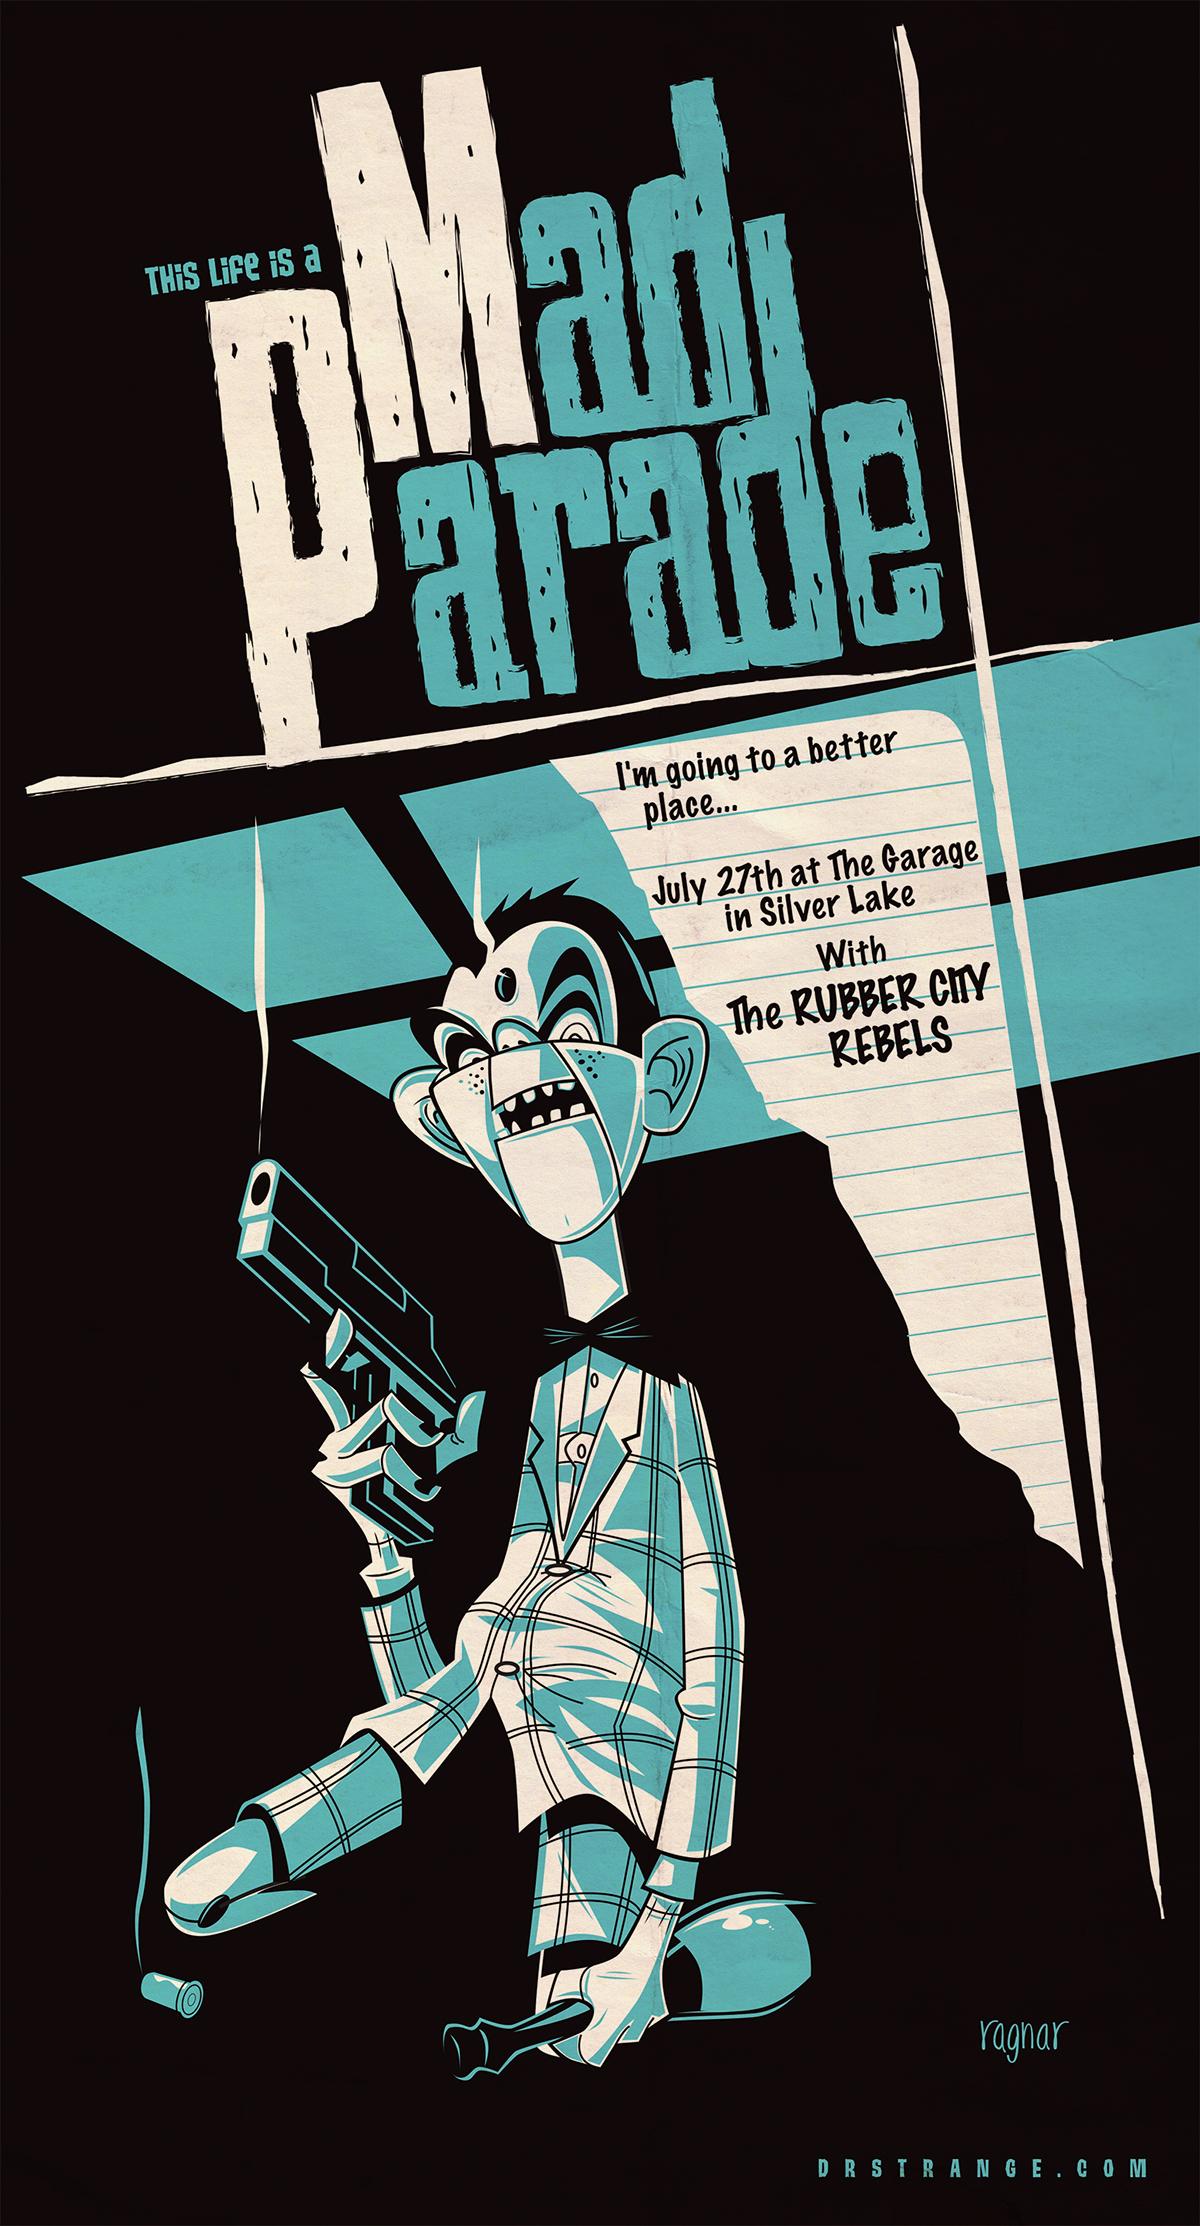 GigPoster punk rock mad parade